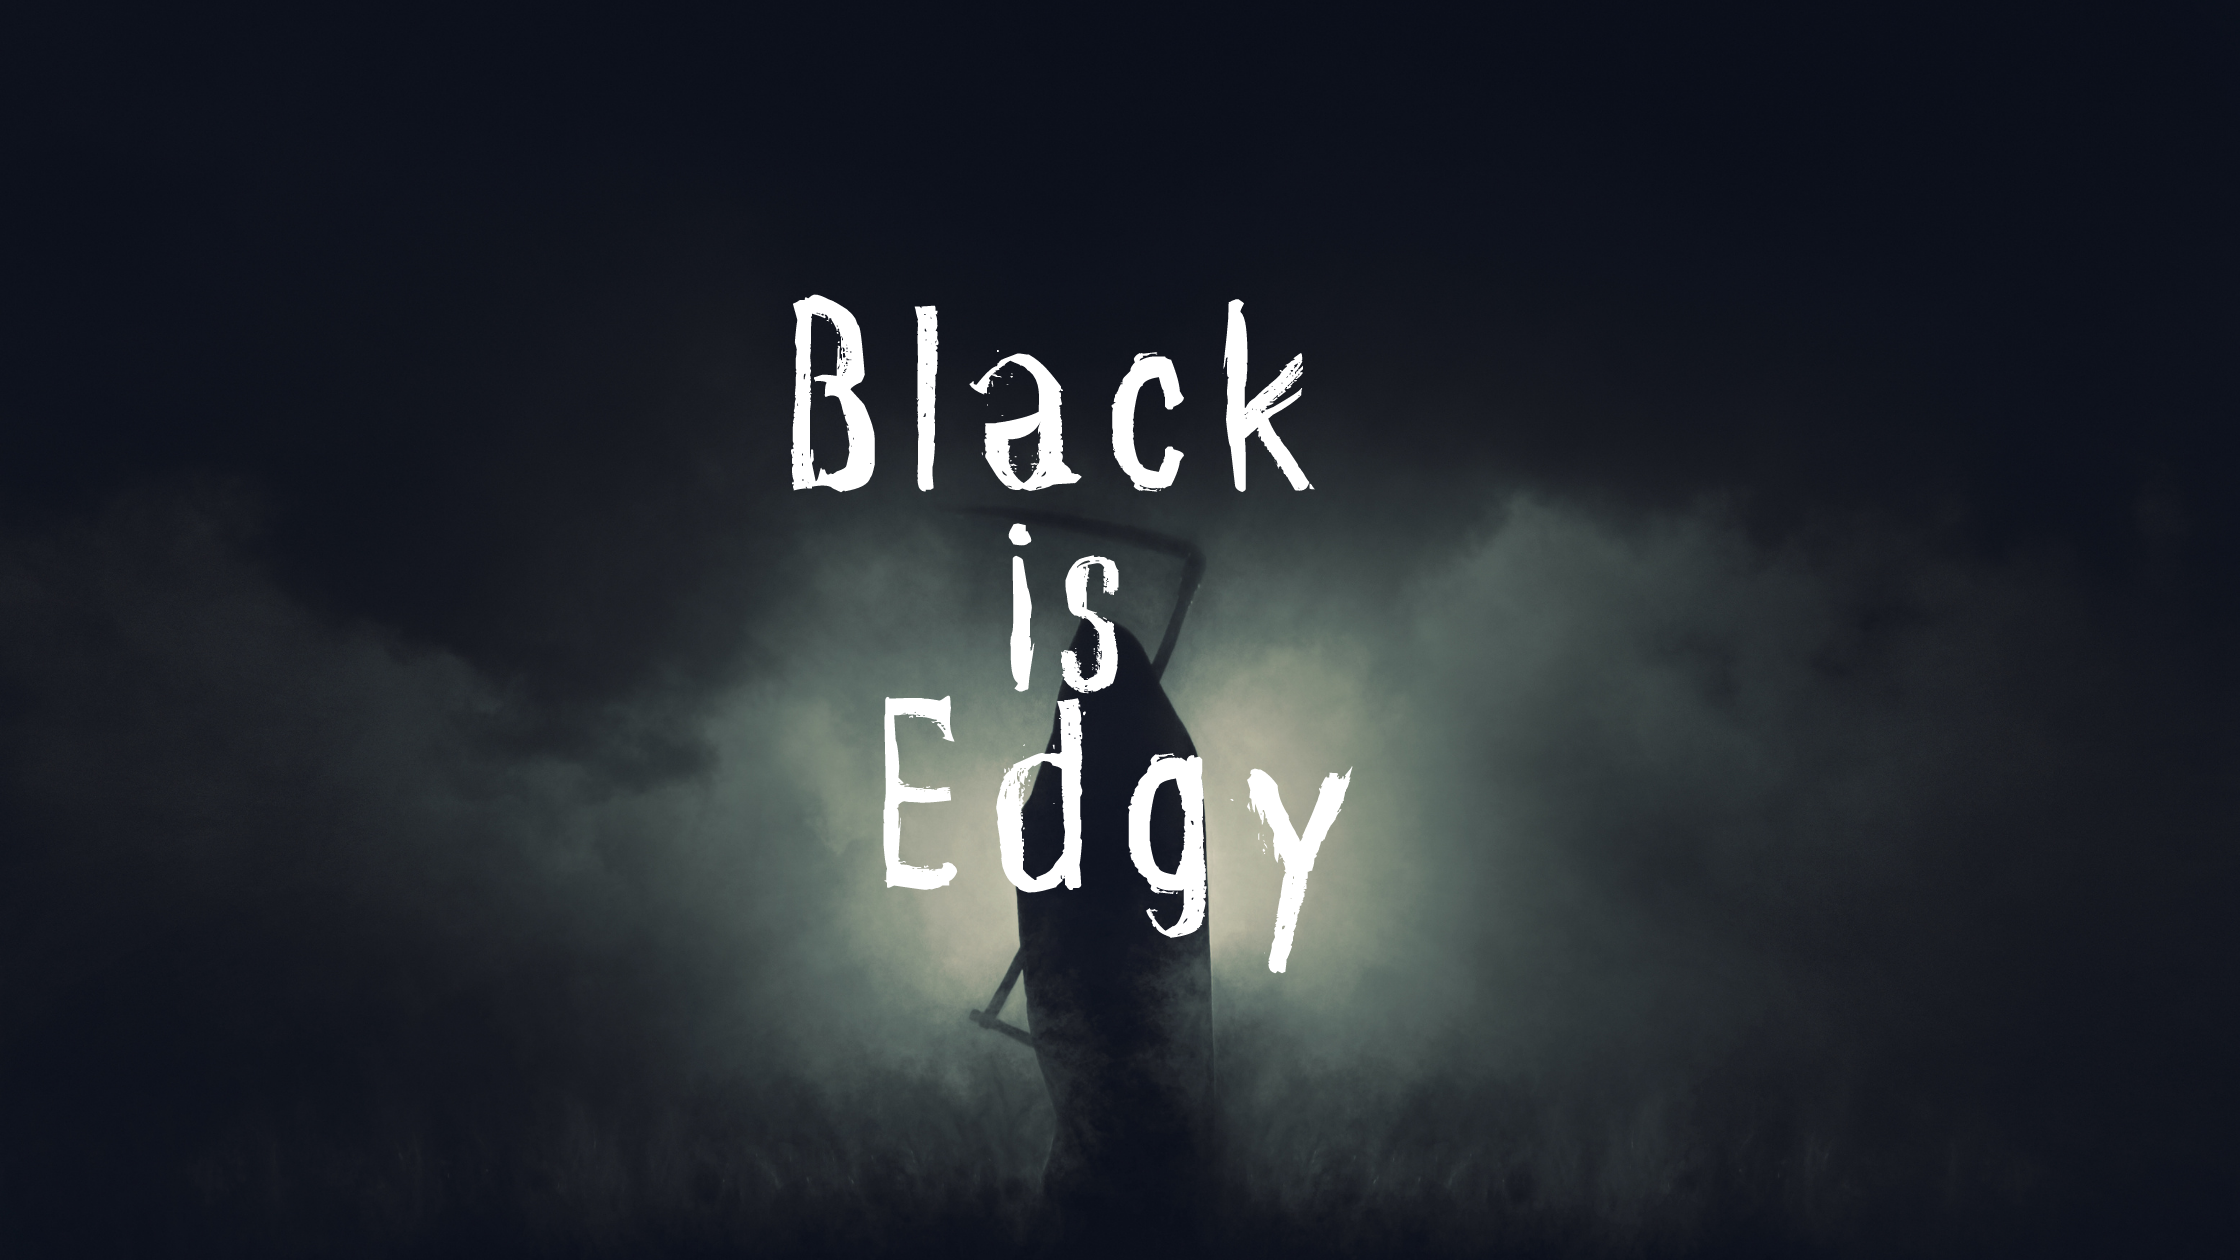 Black is Edgy